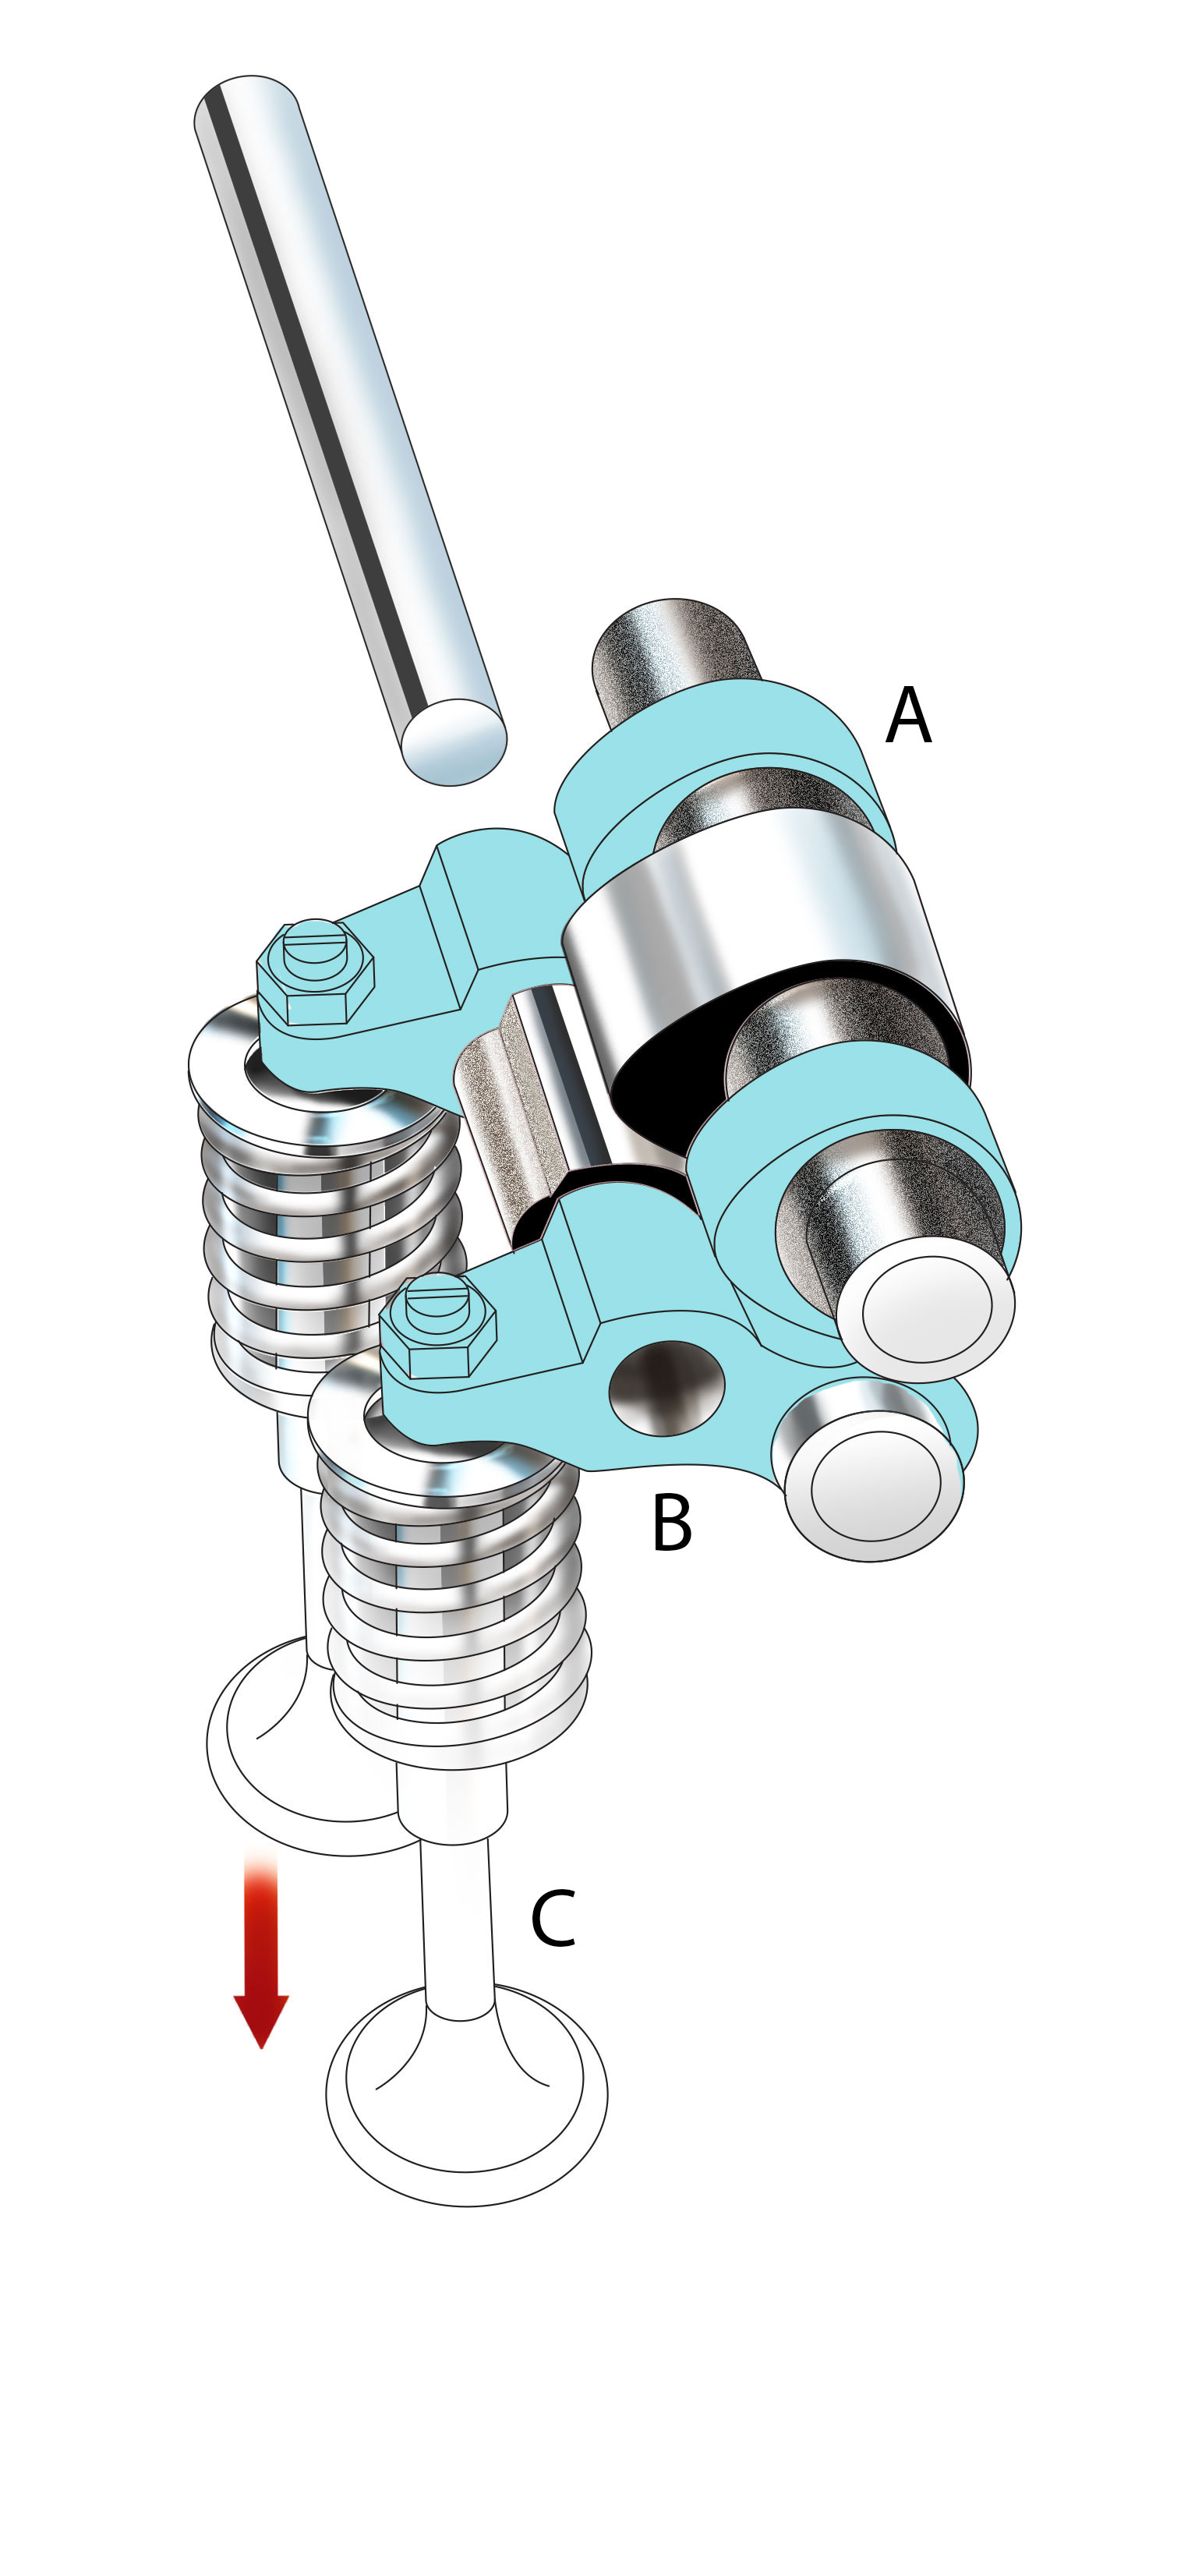 LOW RPM: The outer lobes (A) of the camshaft actuate the rocker arms (B) to press open the valves (C). This mechanism is common to the intake and exhaust valve pairs.